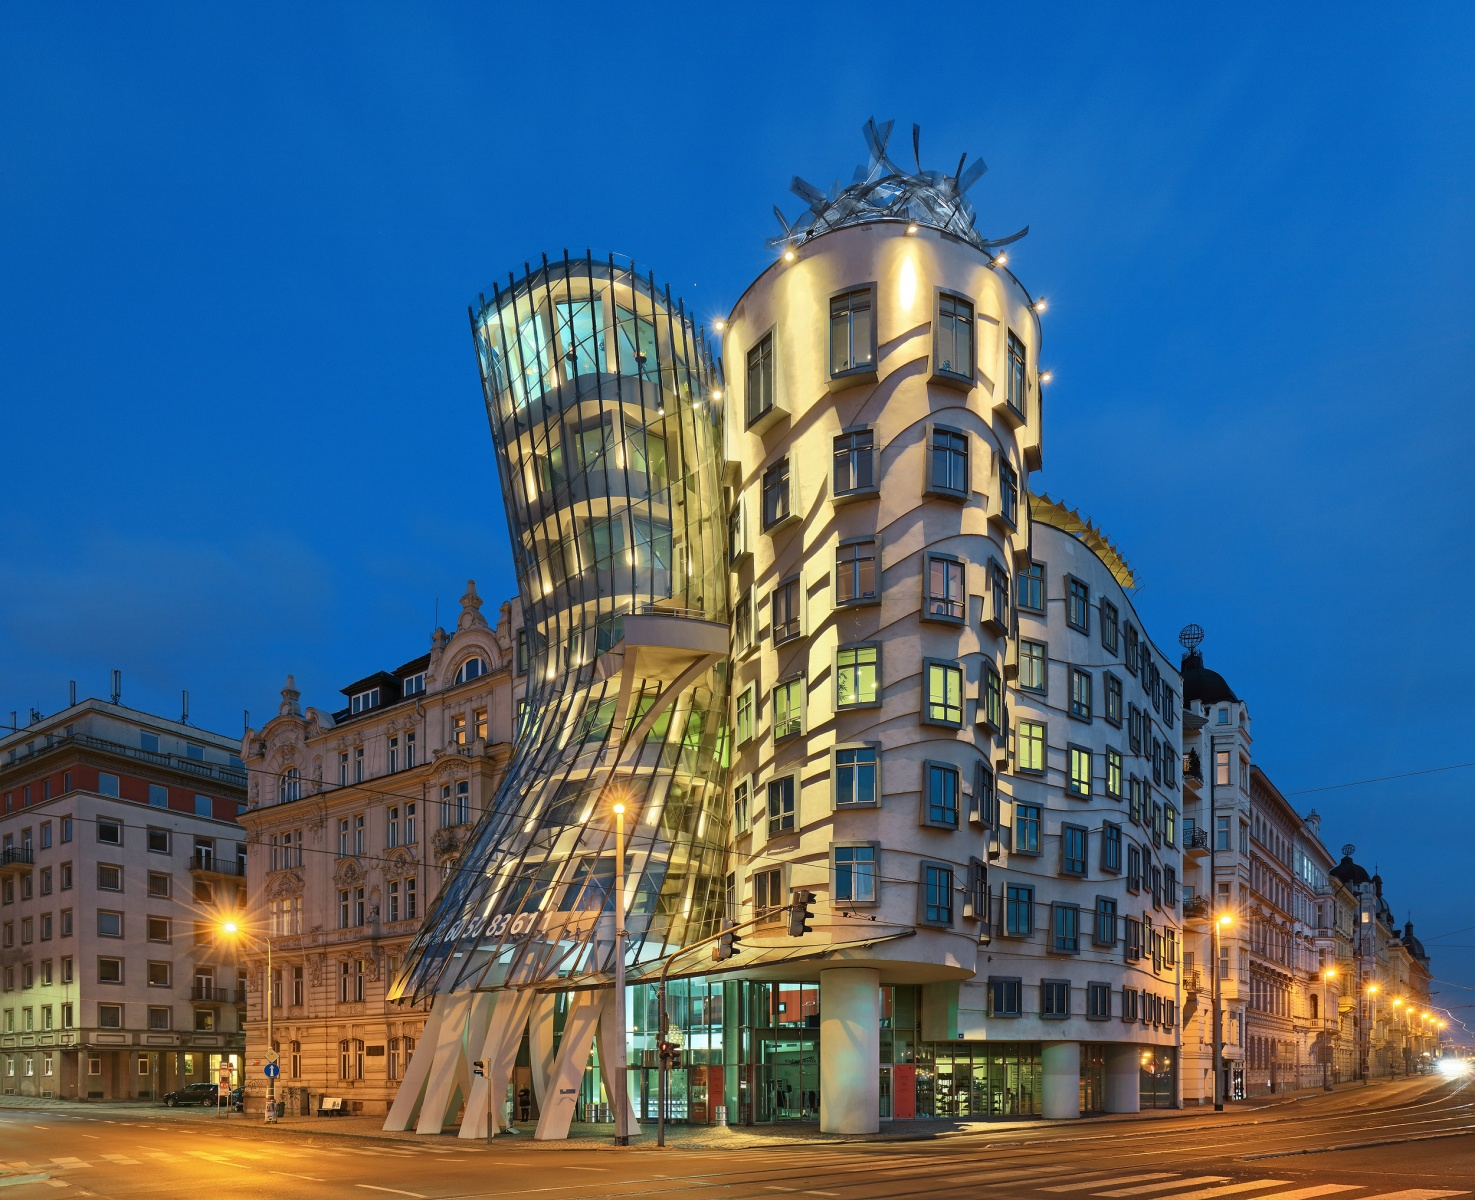 Welcome to official website of Dancing House hotel